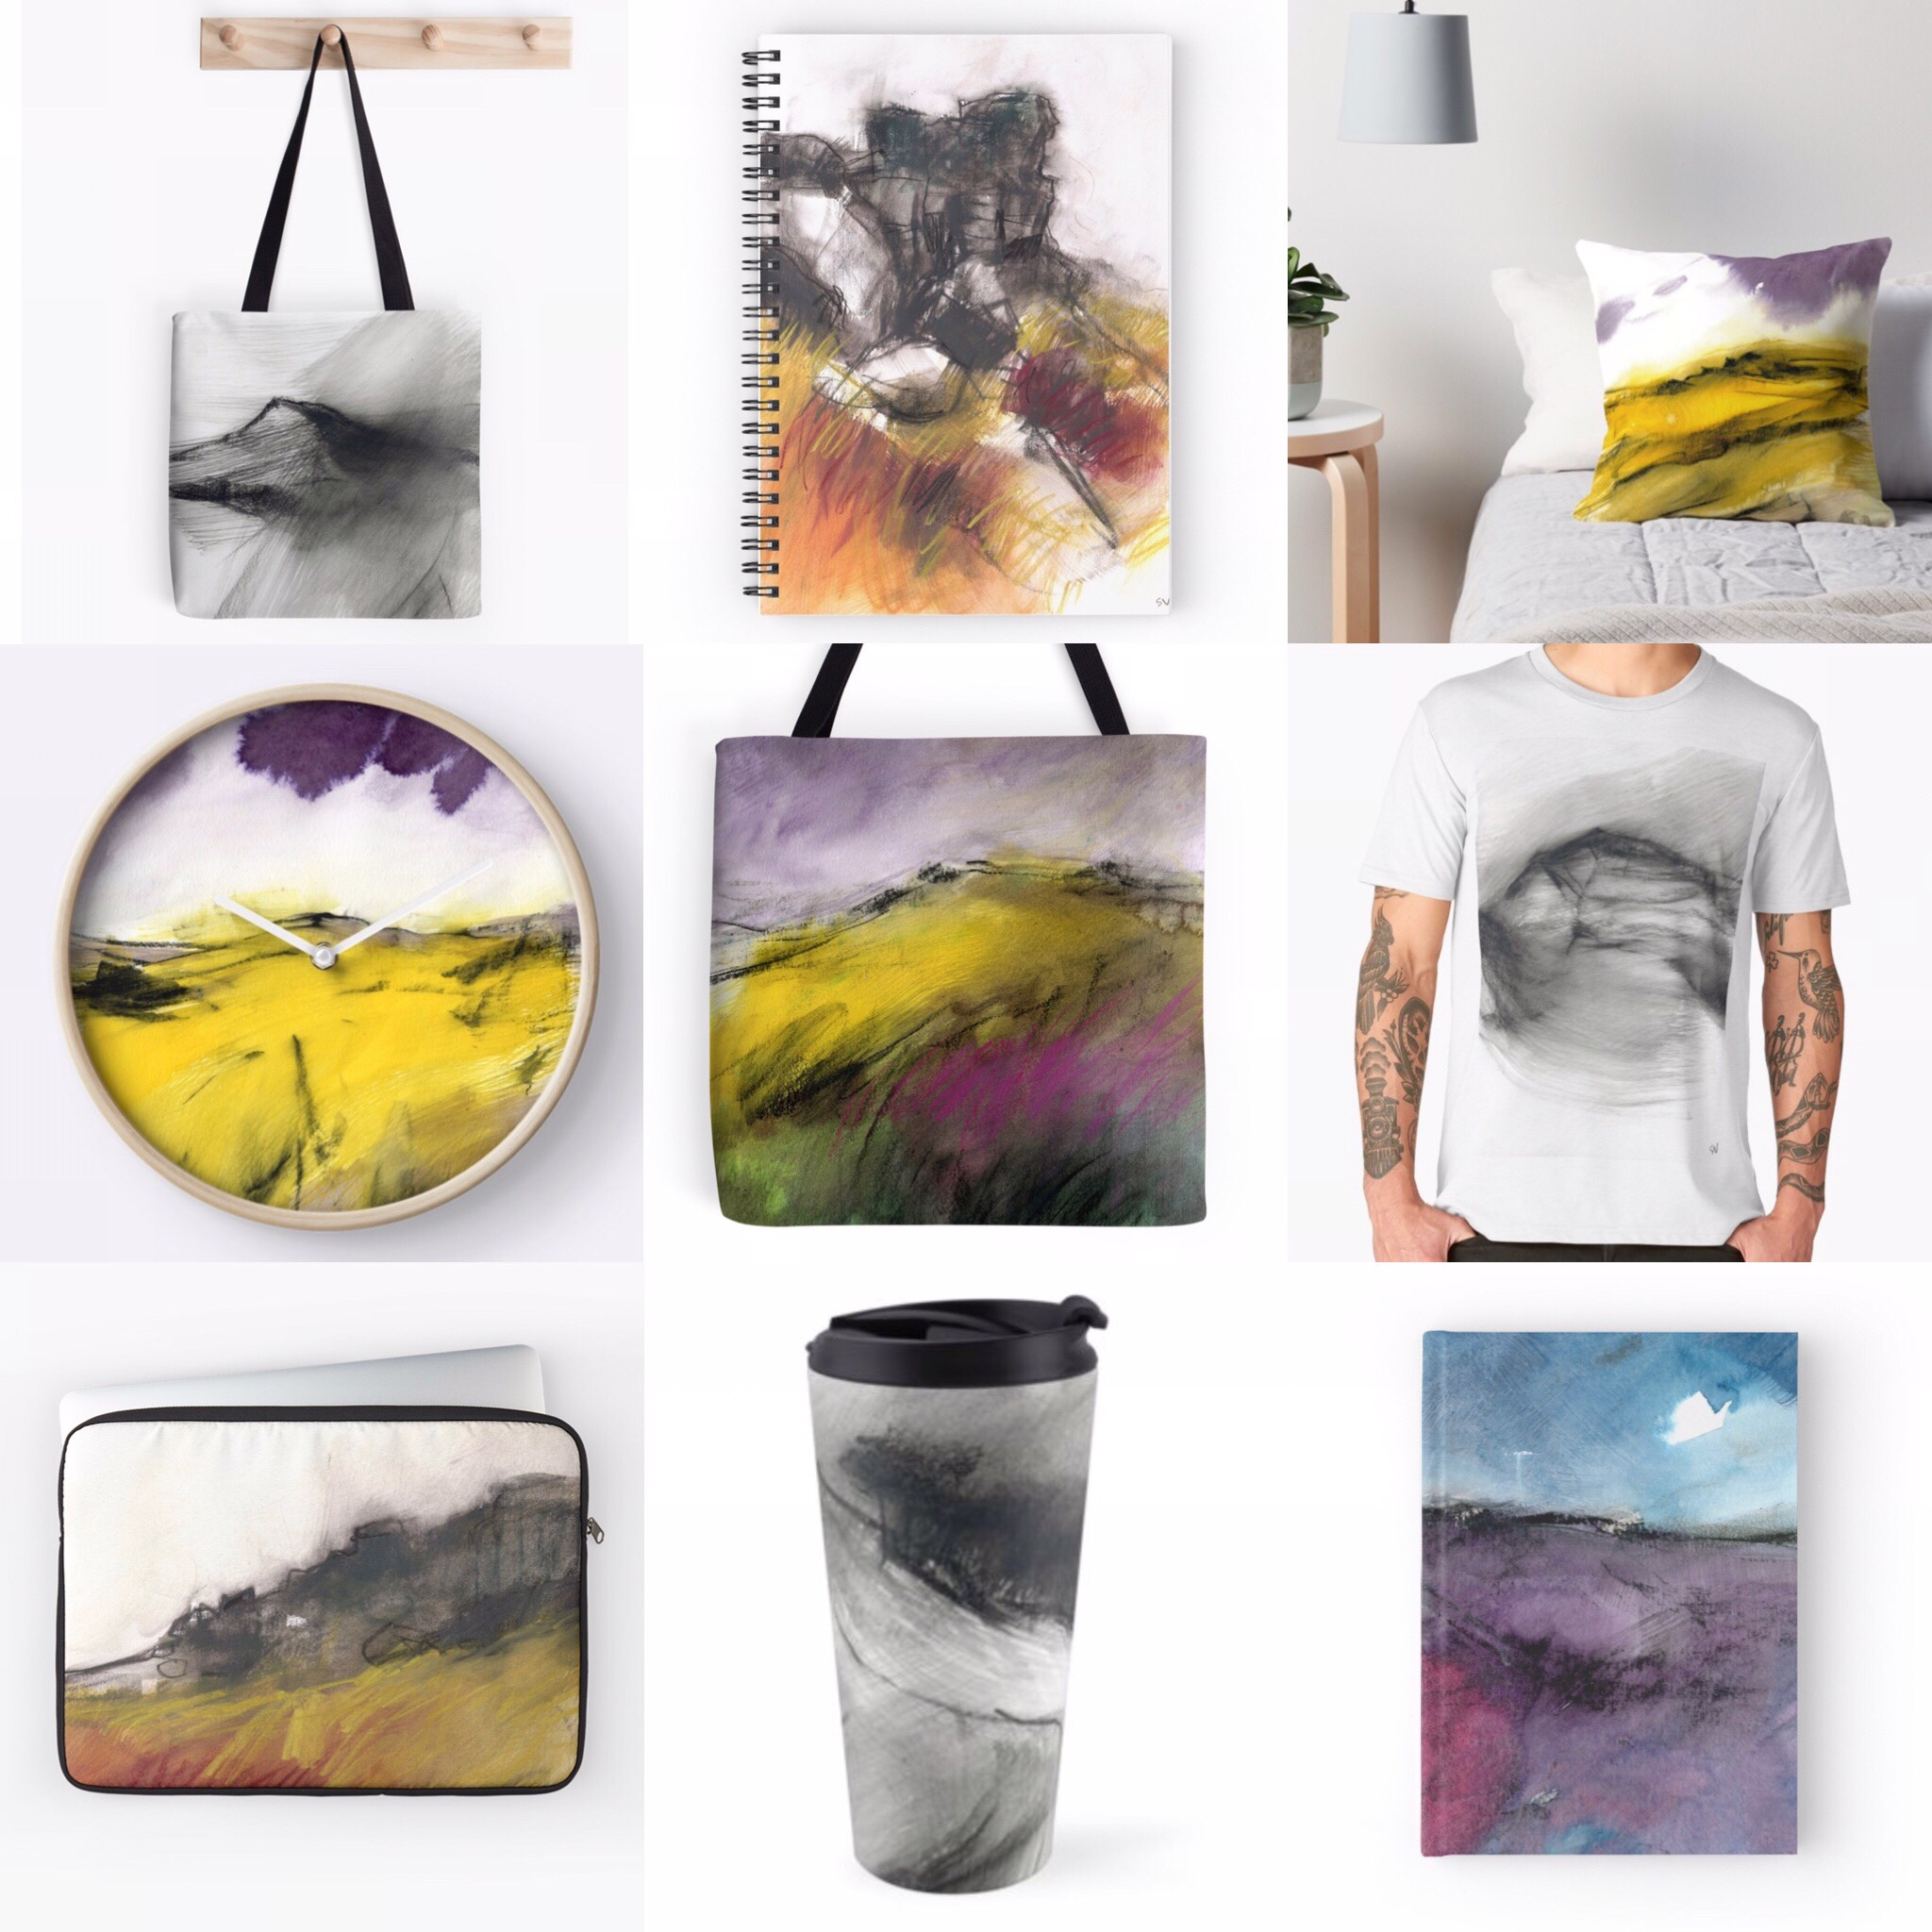 Some of the Peak District gifts, homewares and stationery available to buy on Redbubble by Sheffield artist Sian Vernon